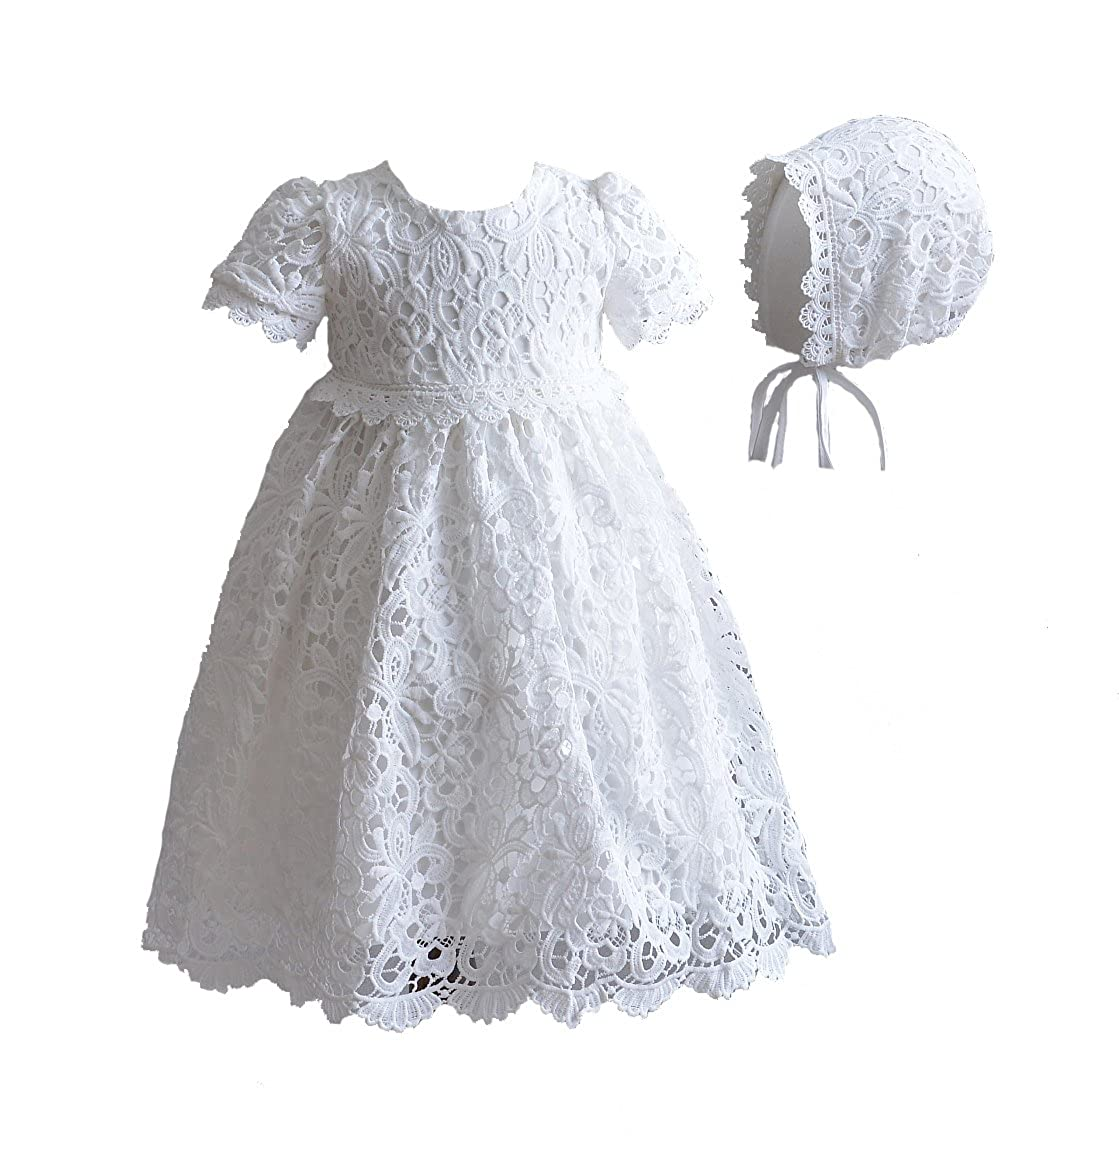 Cinda Baby Lace Christening Gown with Bonnet